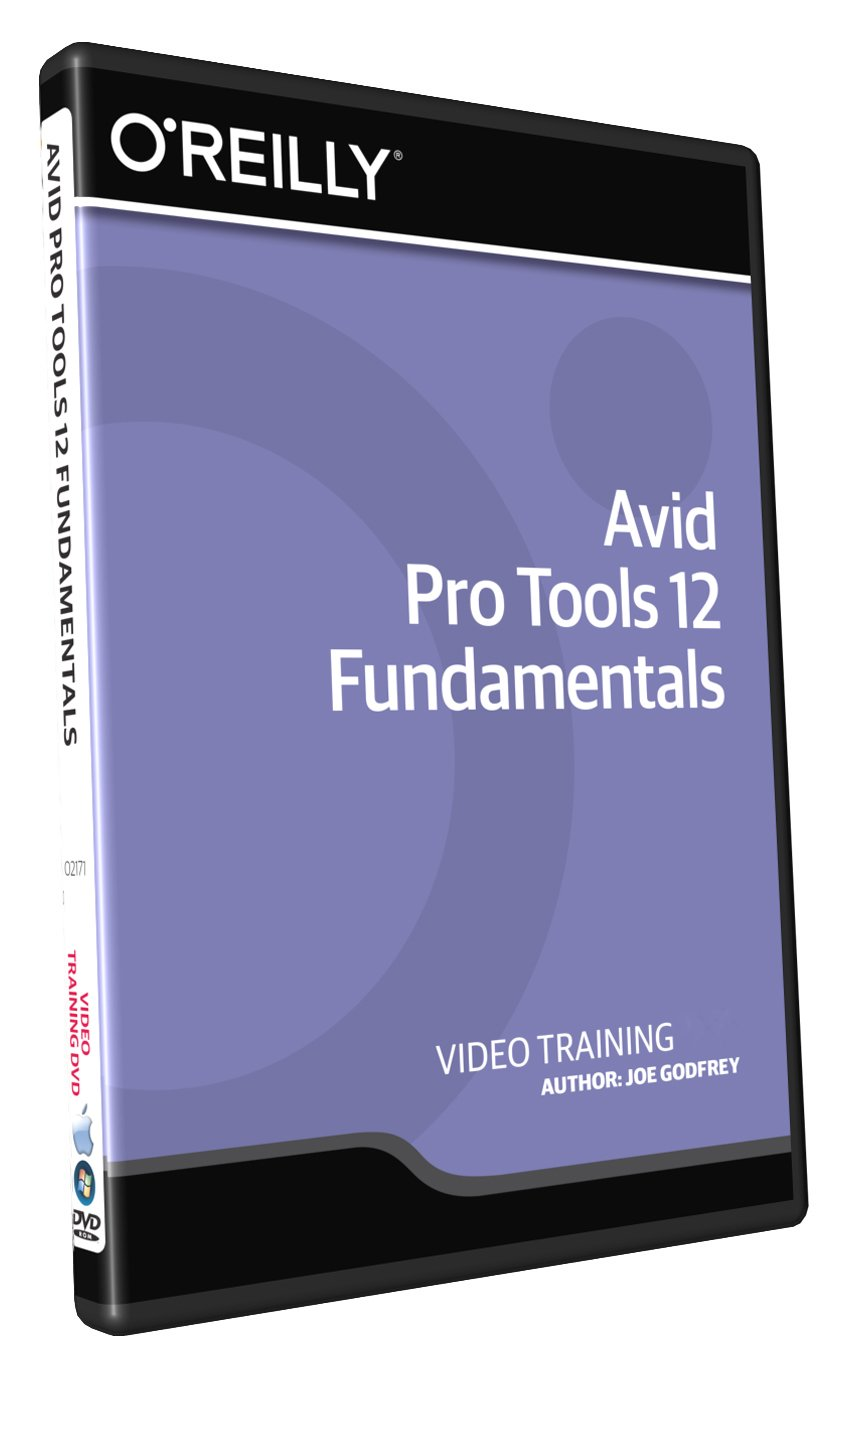 Avid Pro Tools 12 Fundamentals - Training DVD by Infiniteskills